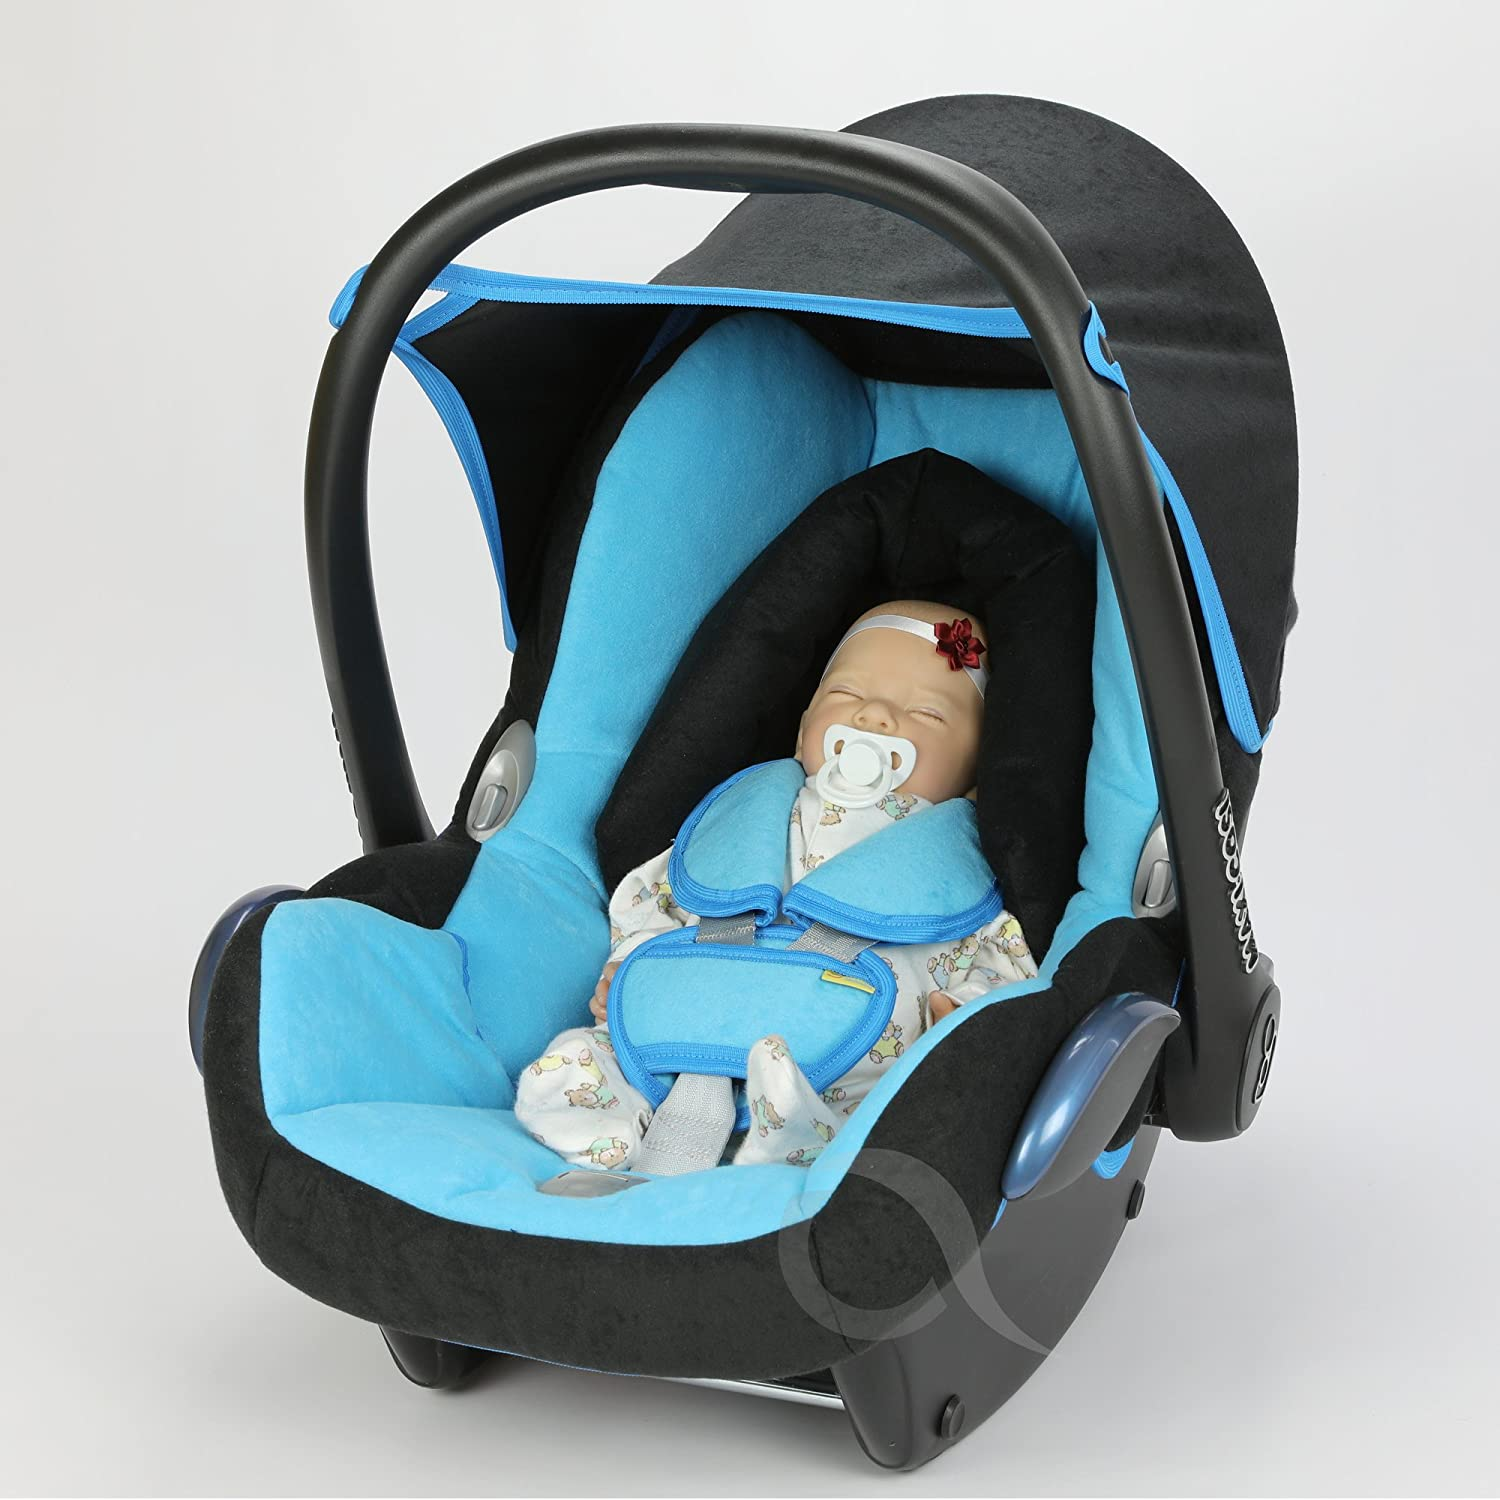 Replacement Seat Cover fits Maxi-Cosi CabrioFix Group 0+ Infant Carrier FULL SET ( turquoise / black)